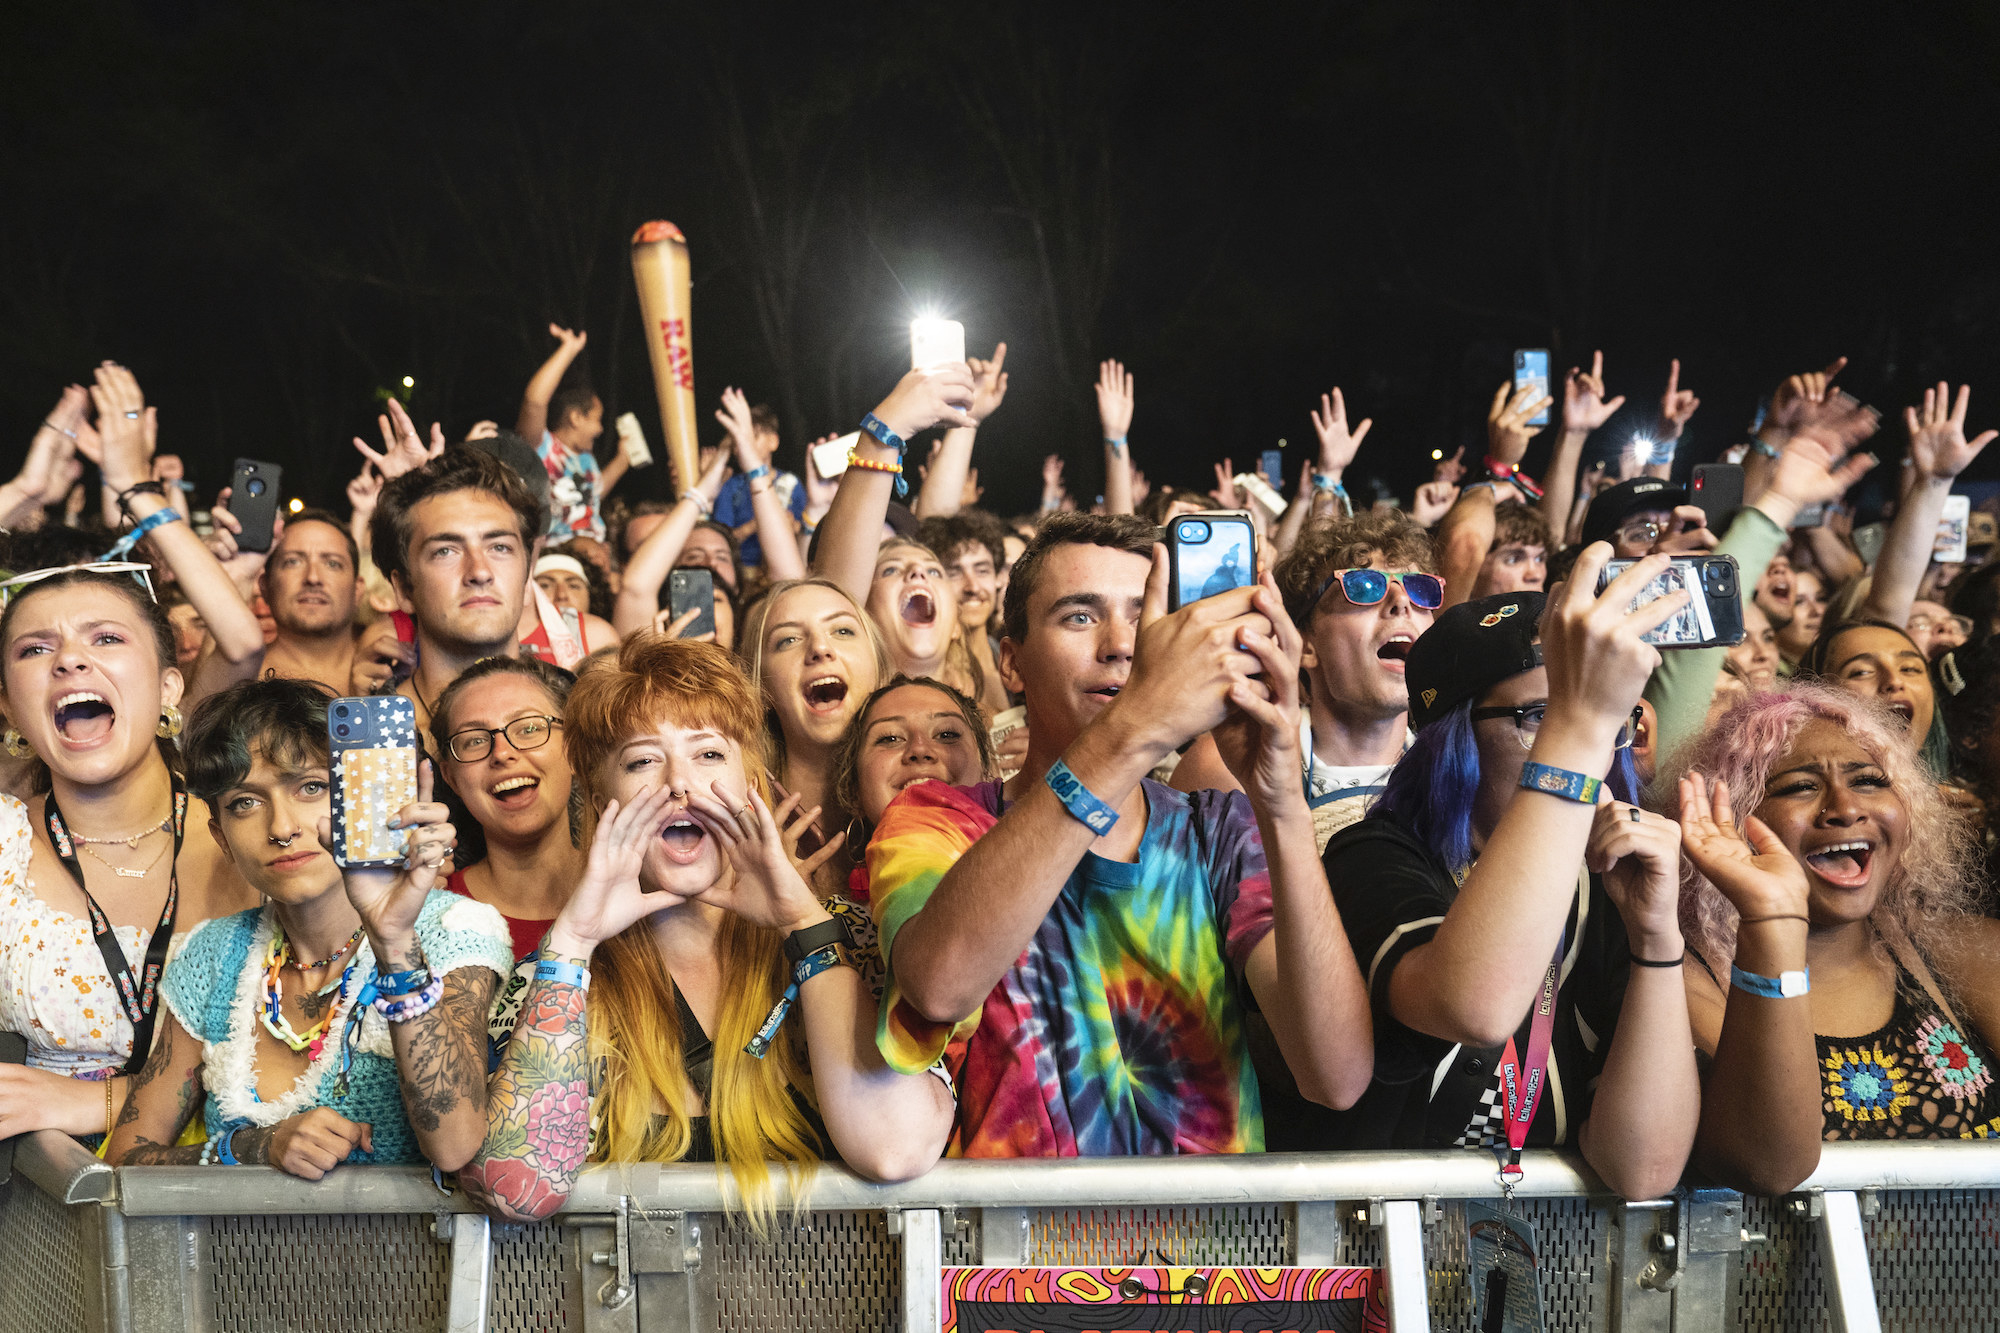 Fans pack behind barricades for the evening music set at Lollapalooza music festival.